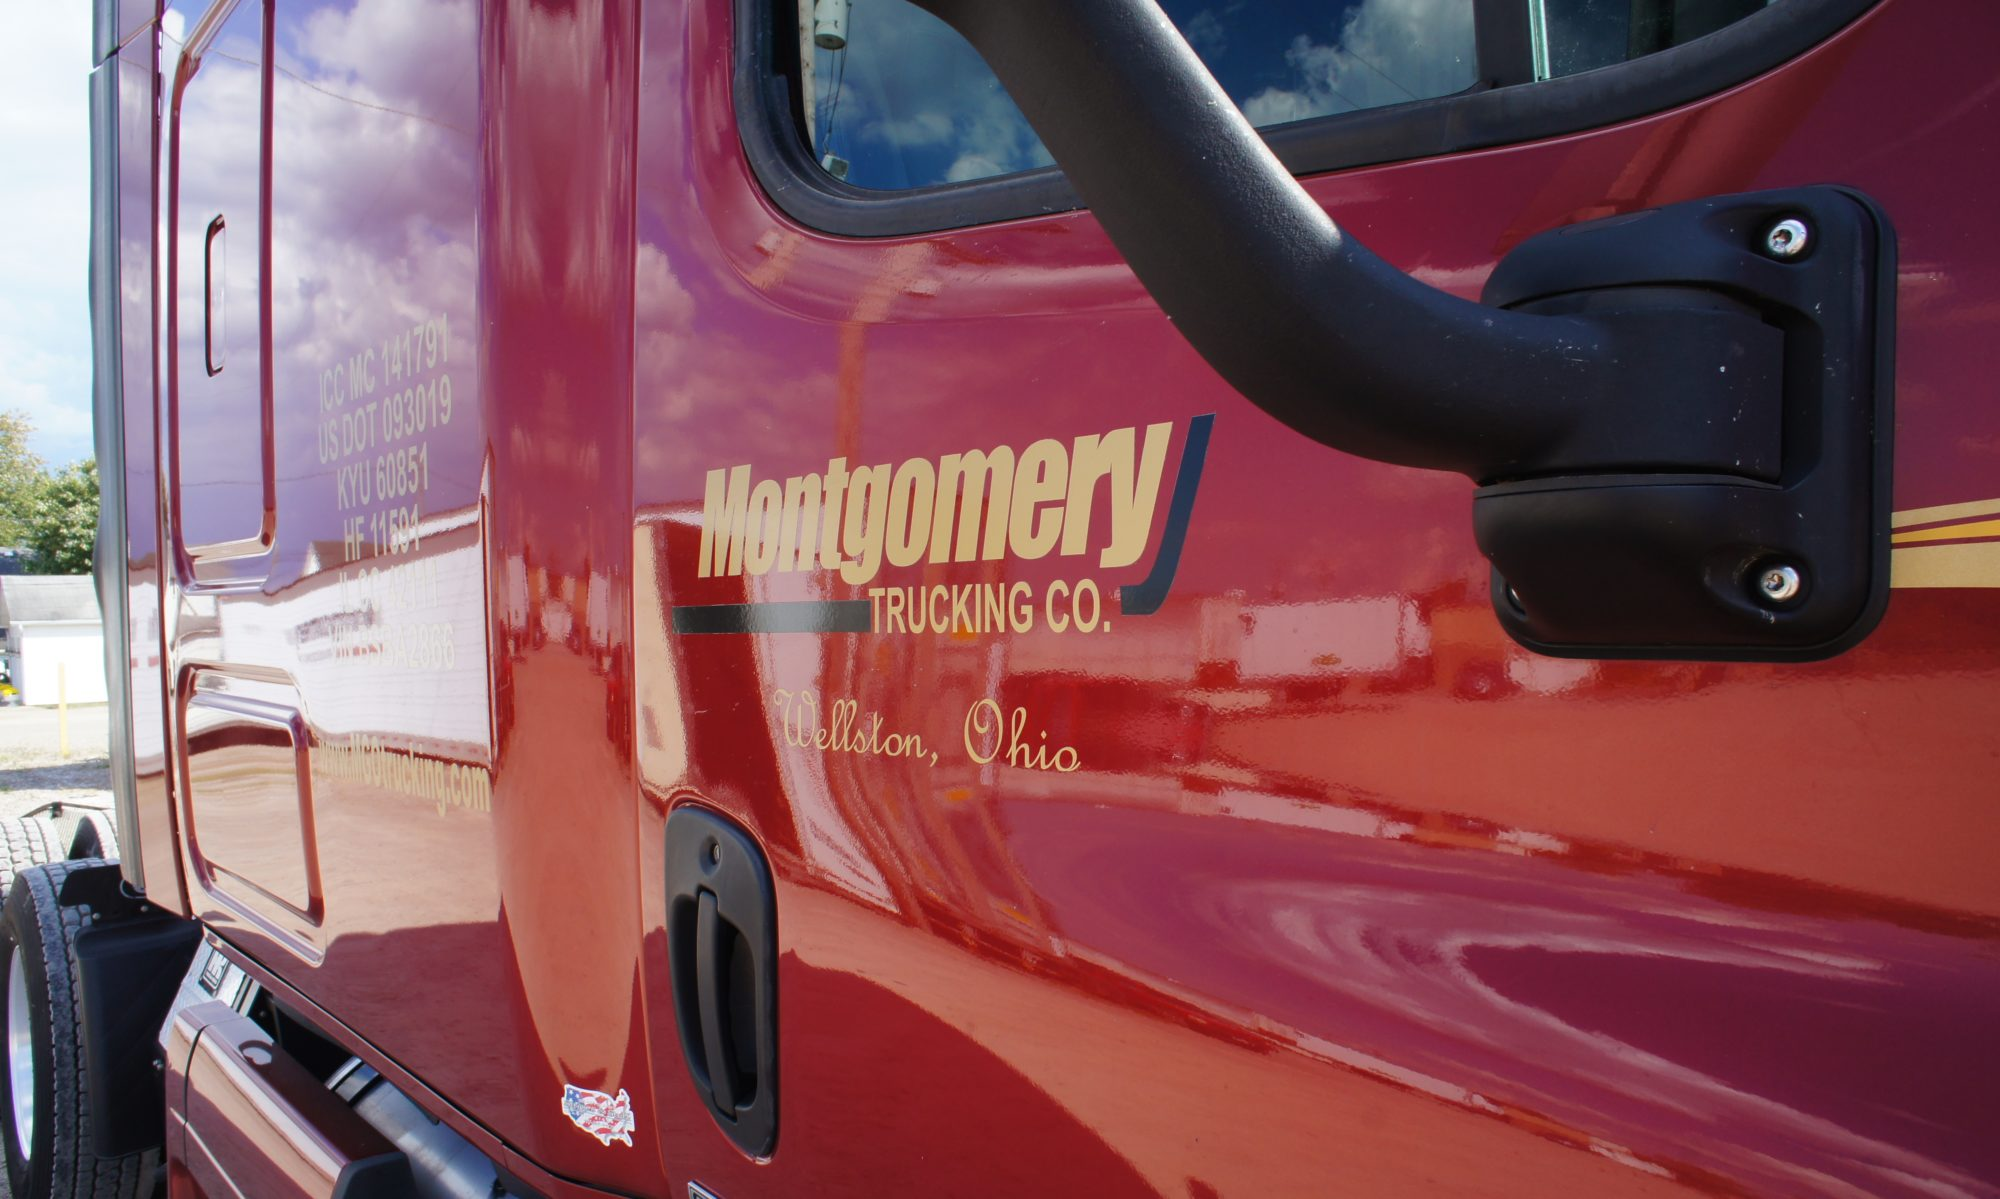 Montgomery Trucking